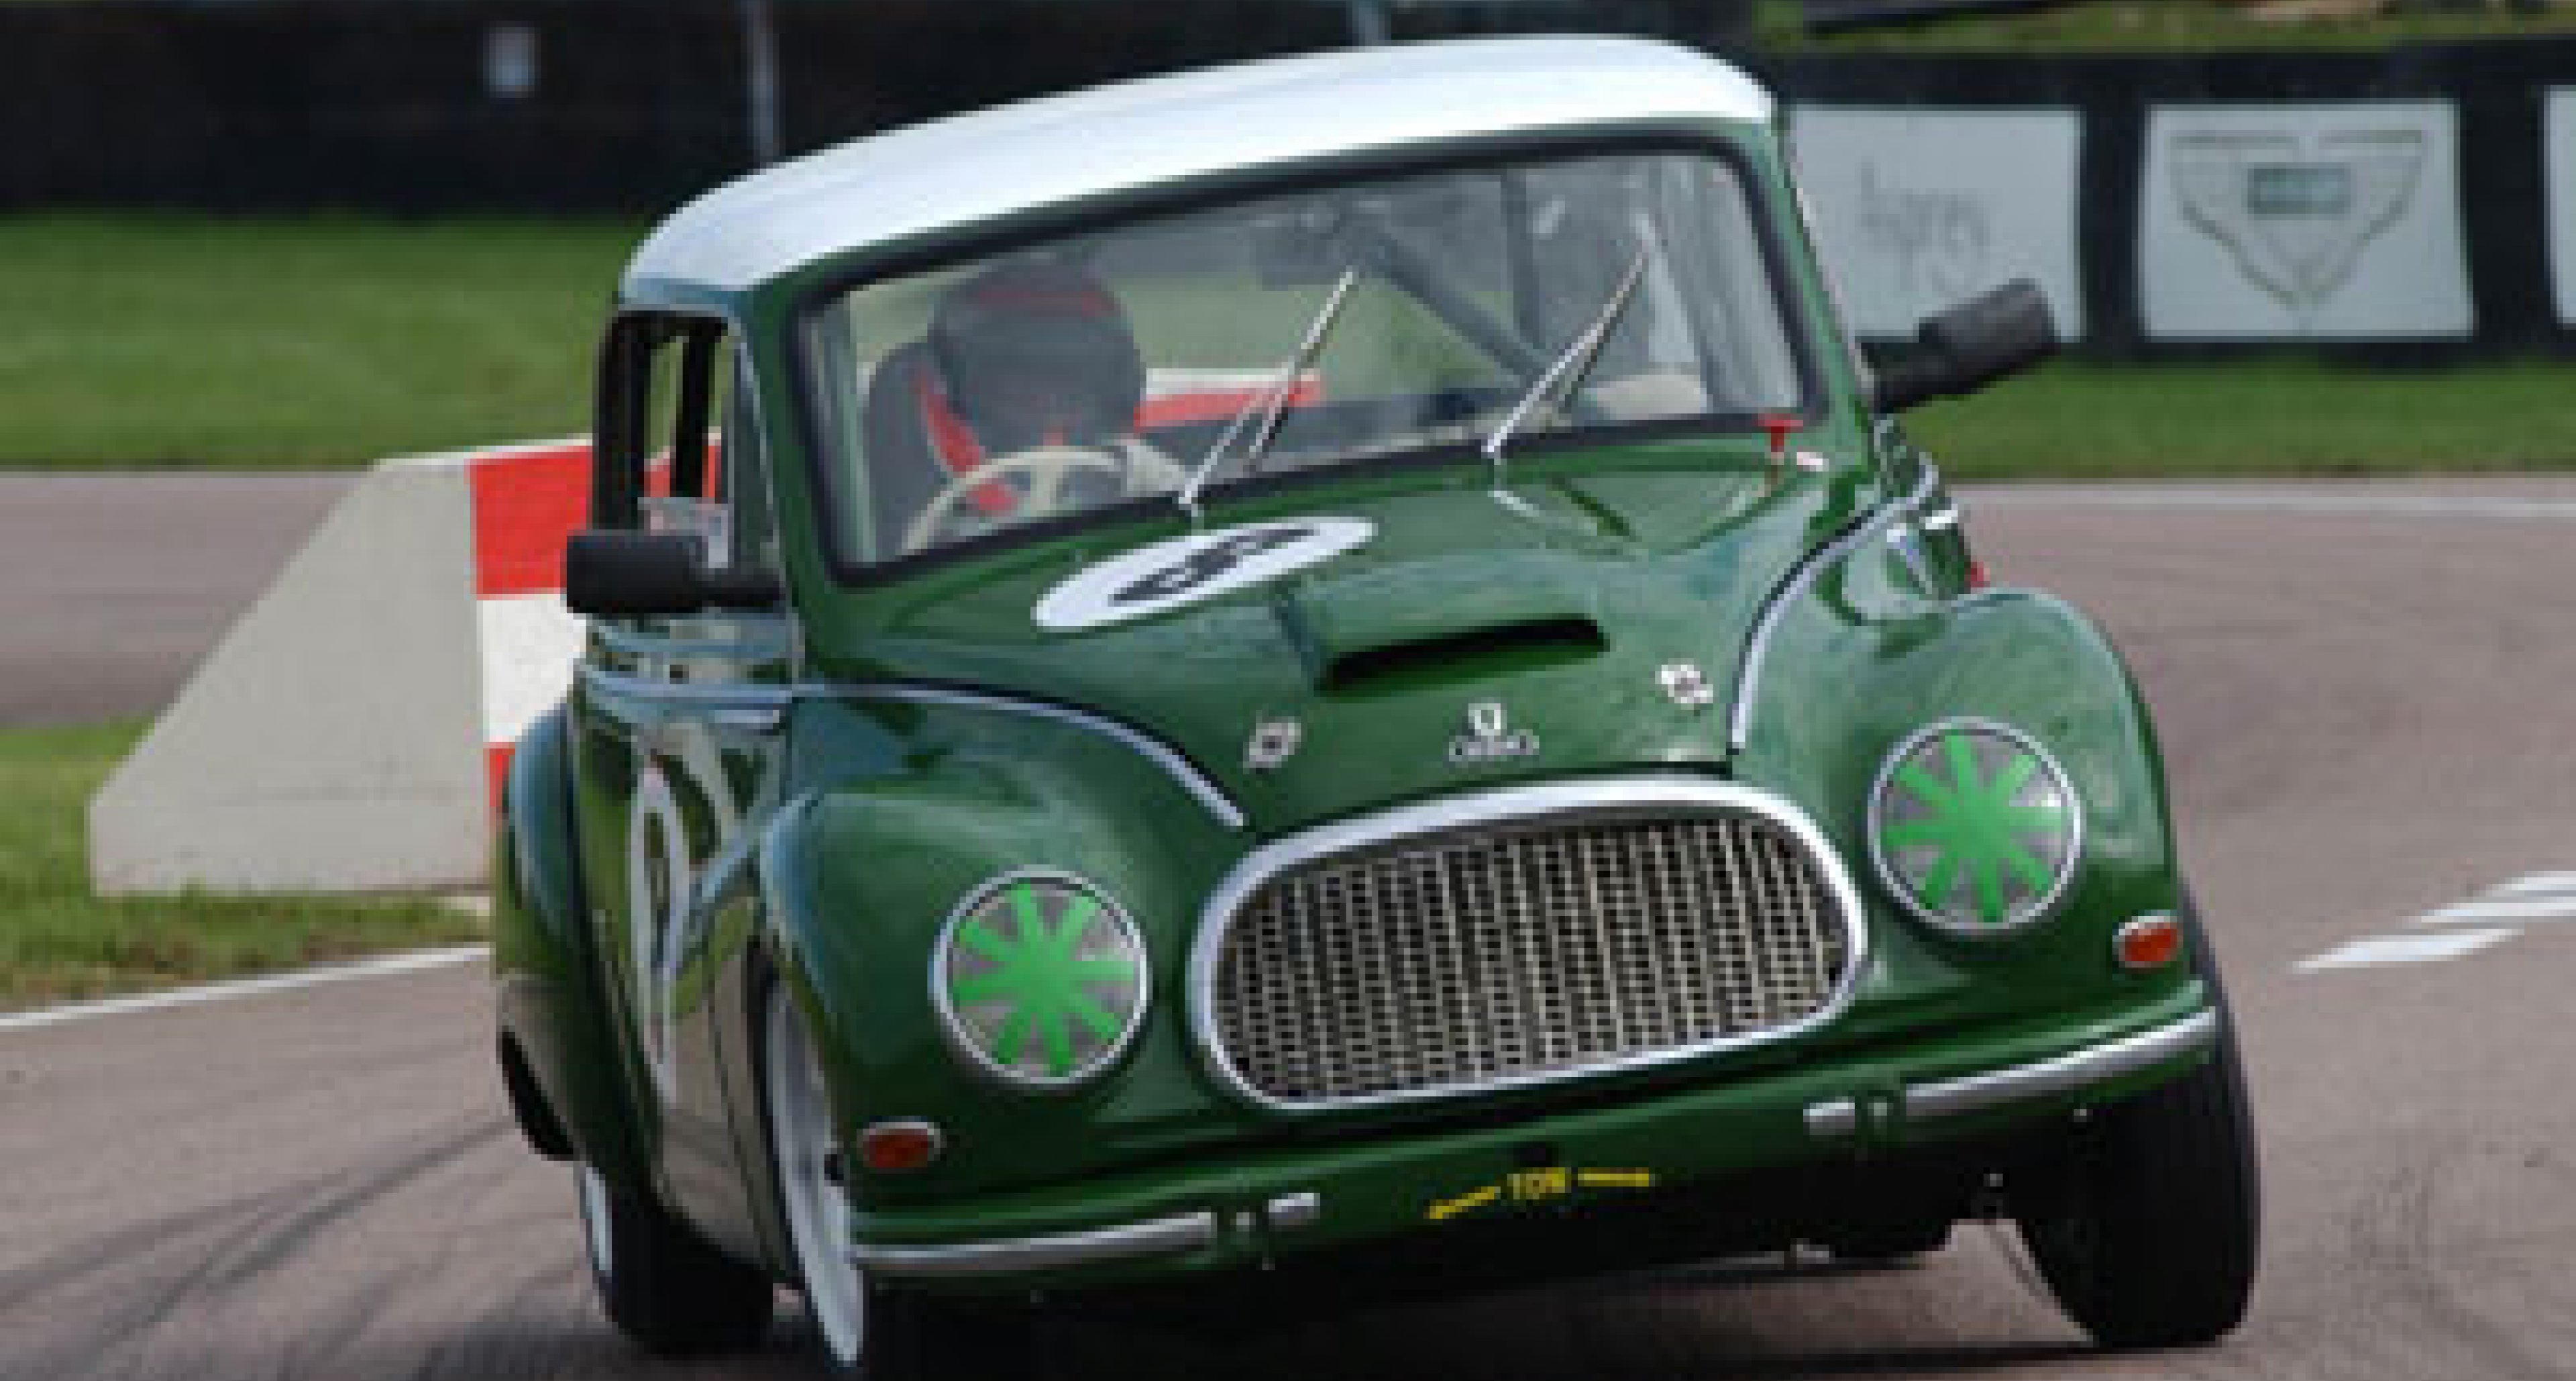 DKW 'stroked' home at Goodwood Revival 2002